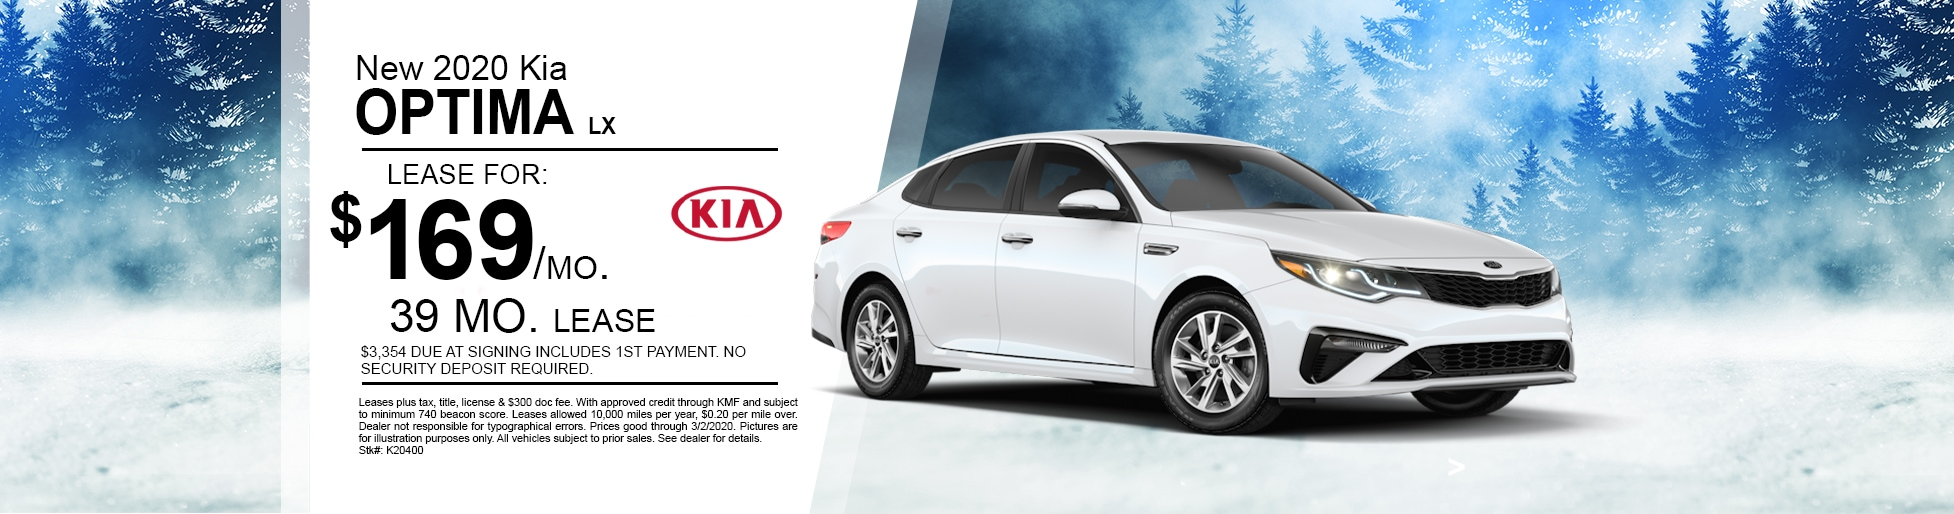 New 2020 Kia Optima Special Deal